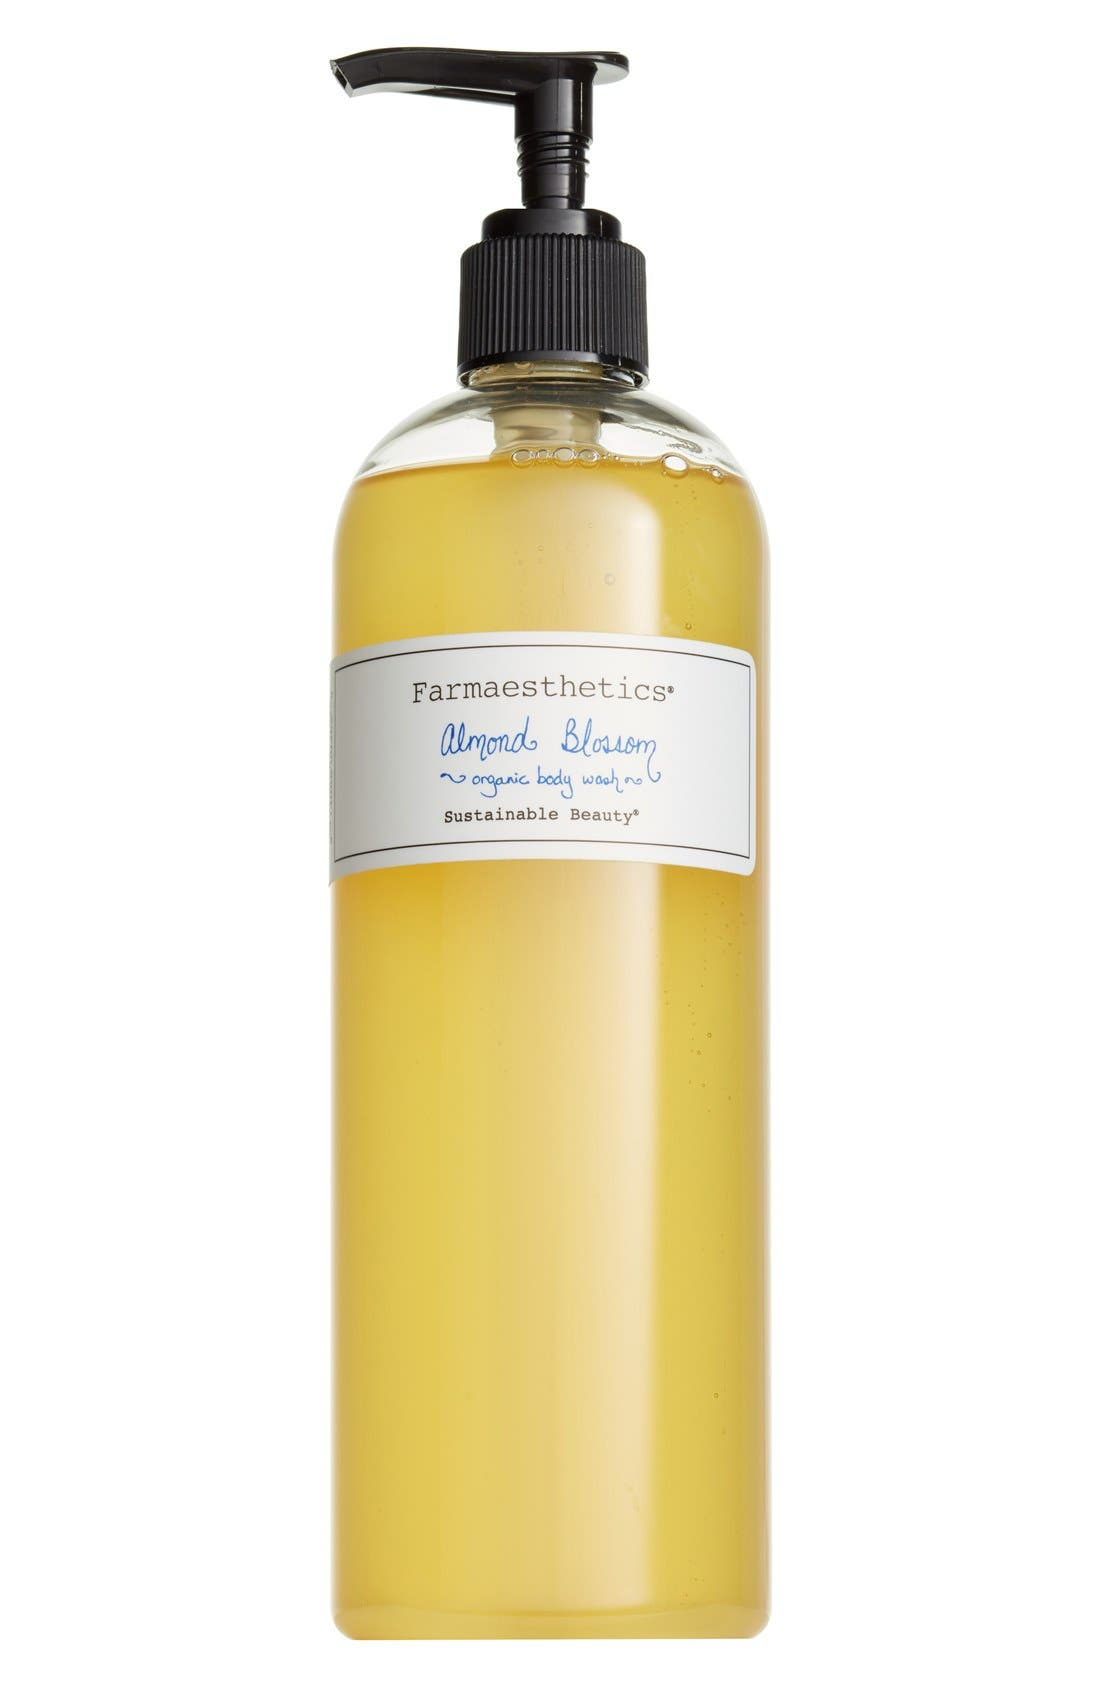 Farmaesthetics Almond Blossom Organic Body Wash